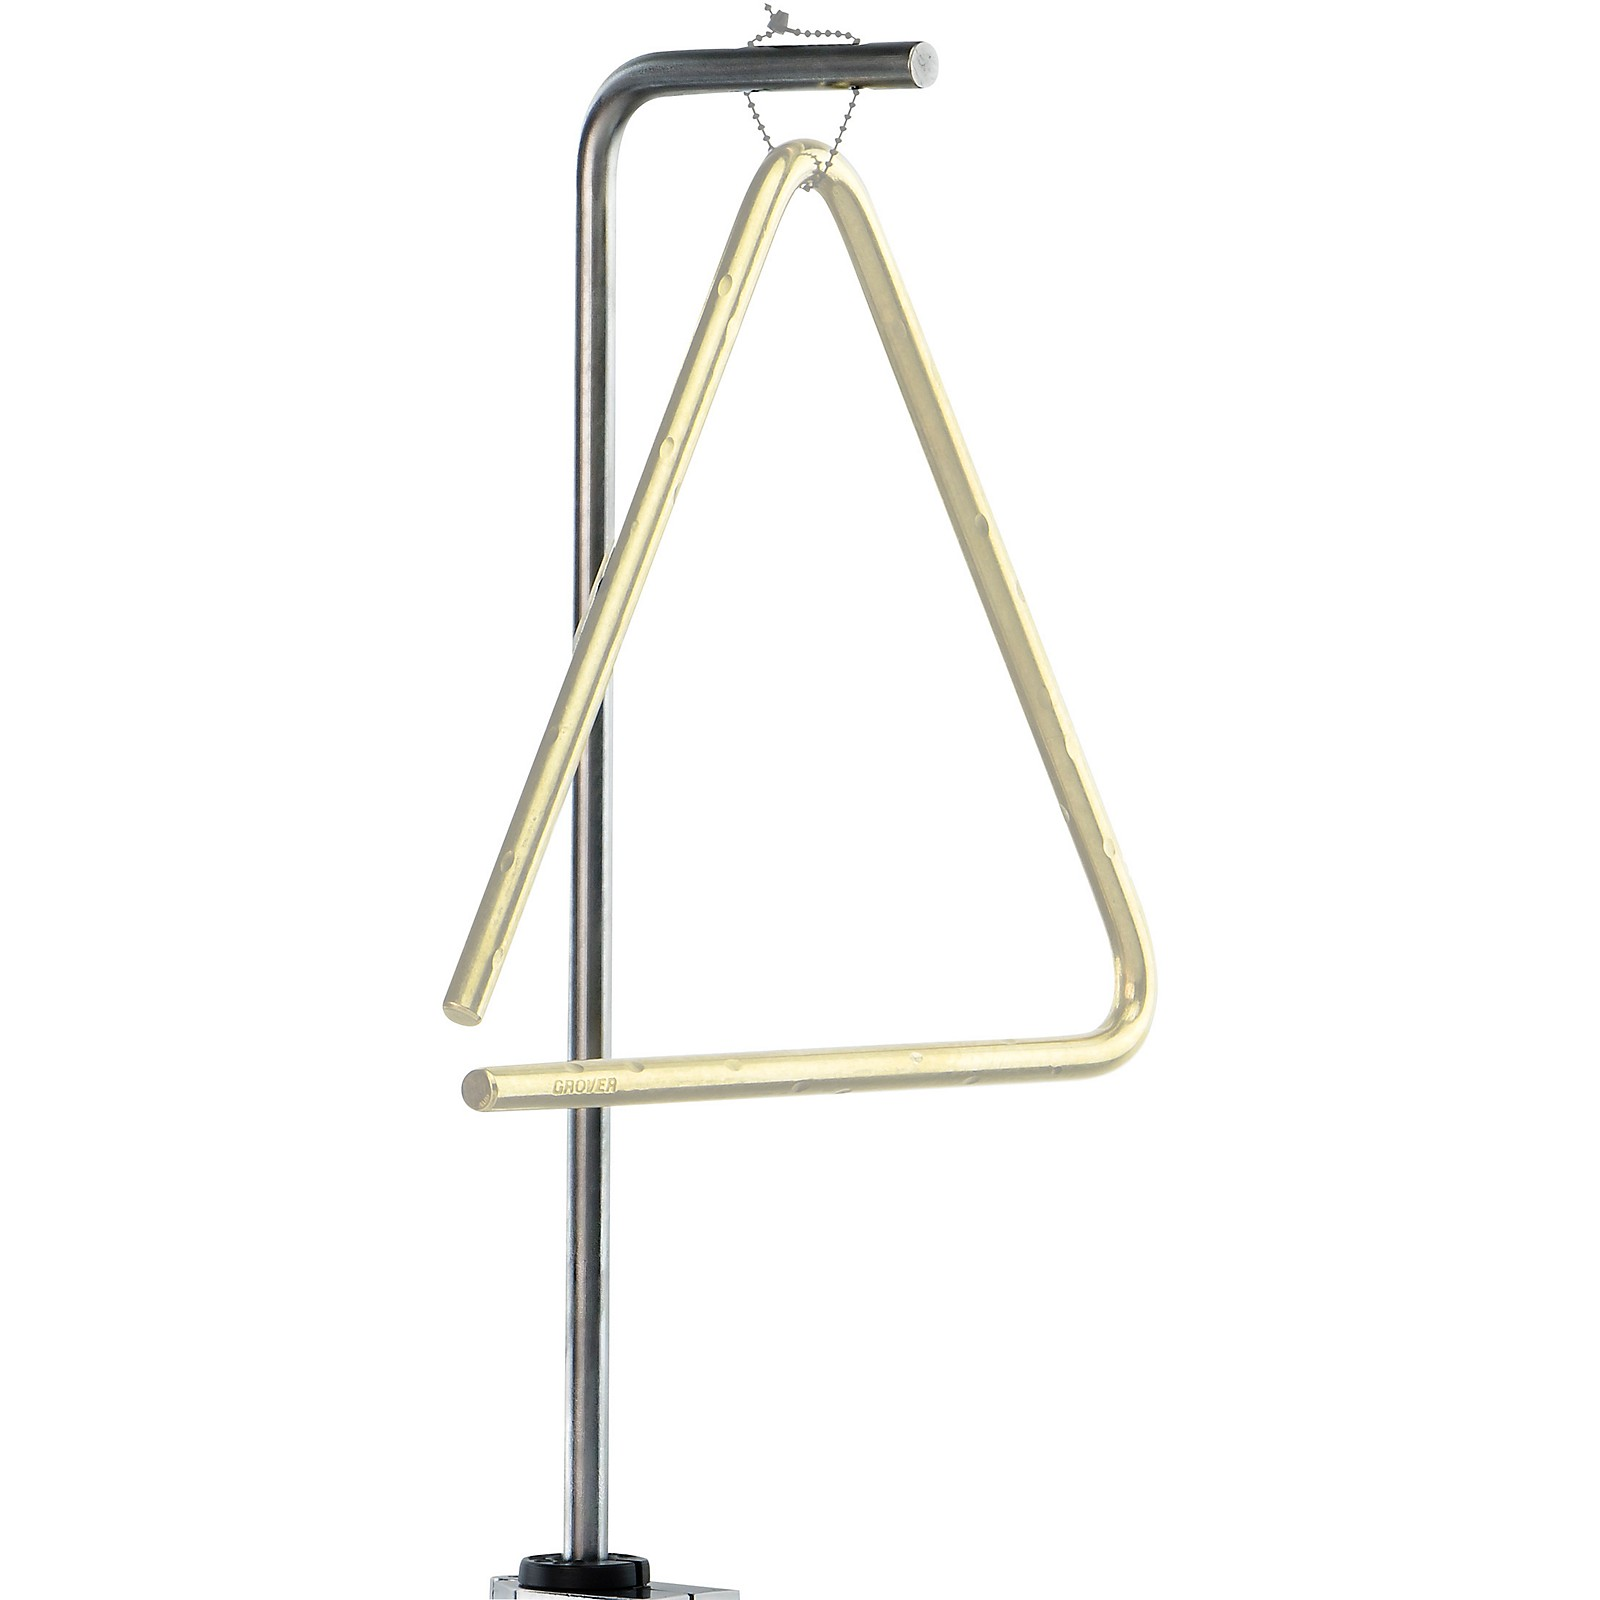 Grover Pro Triangle Arm